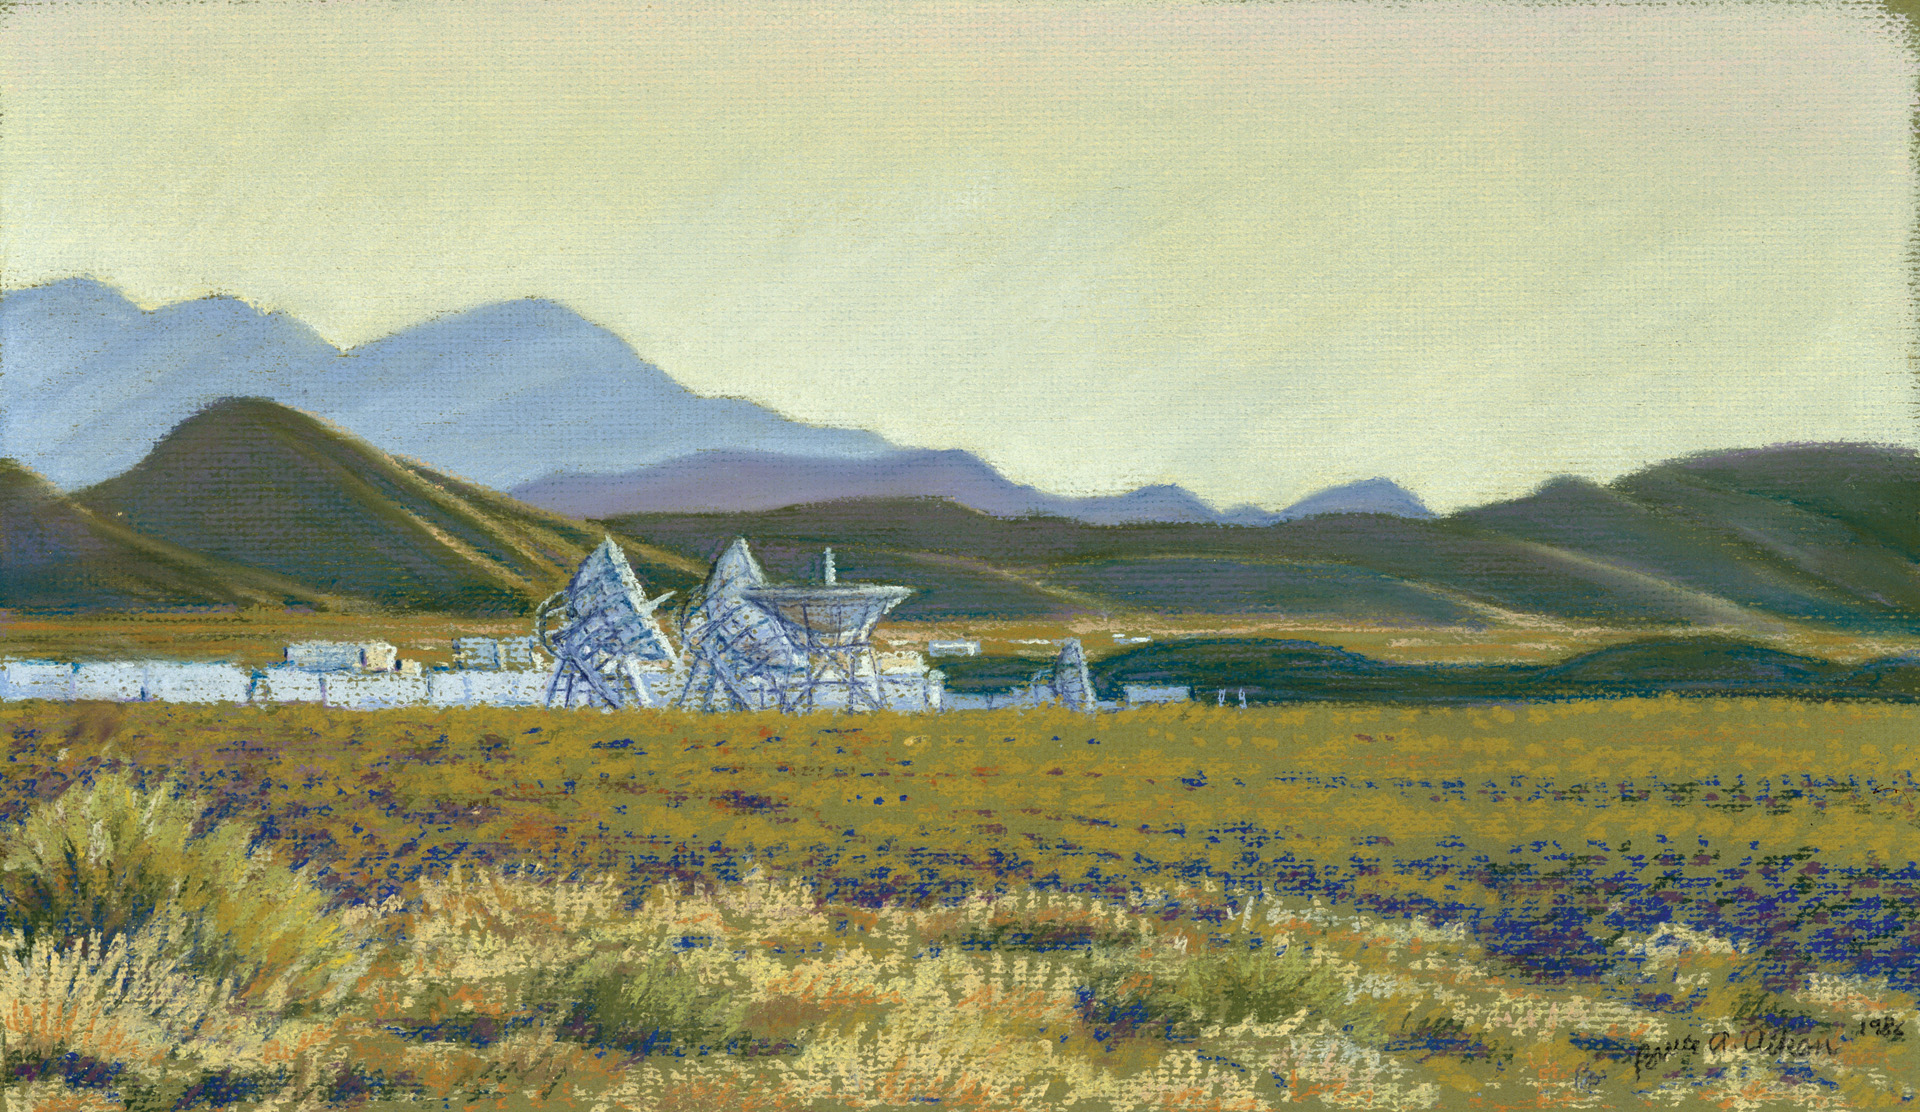 White Sands Space Tracking Facility - pastel 1986